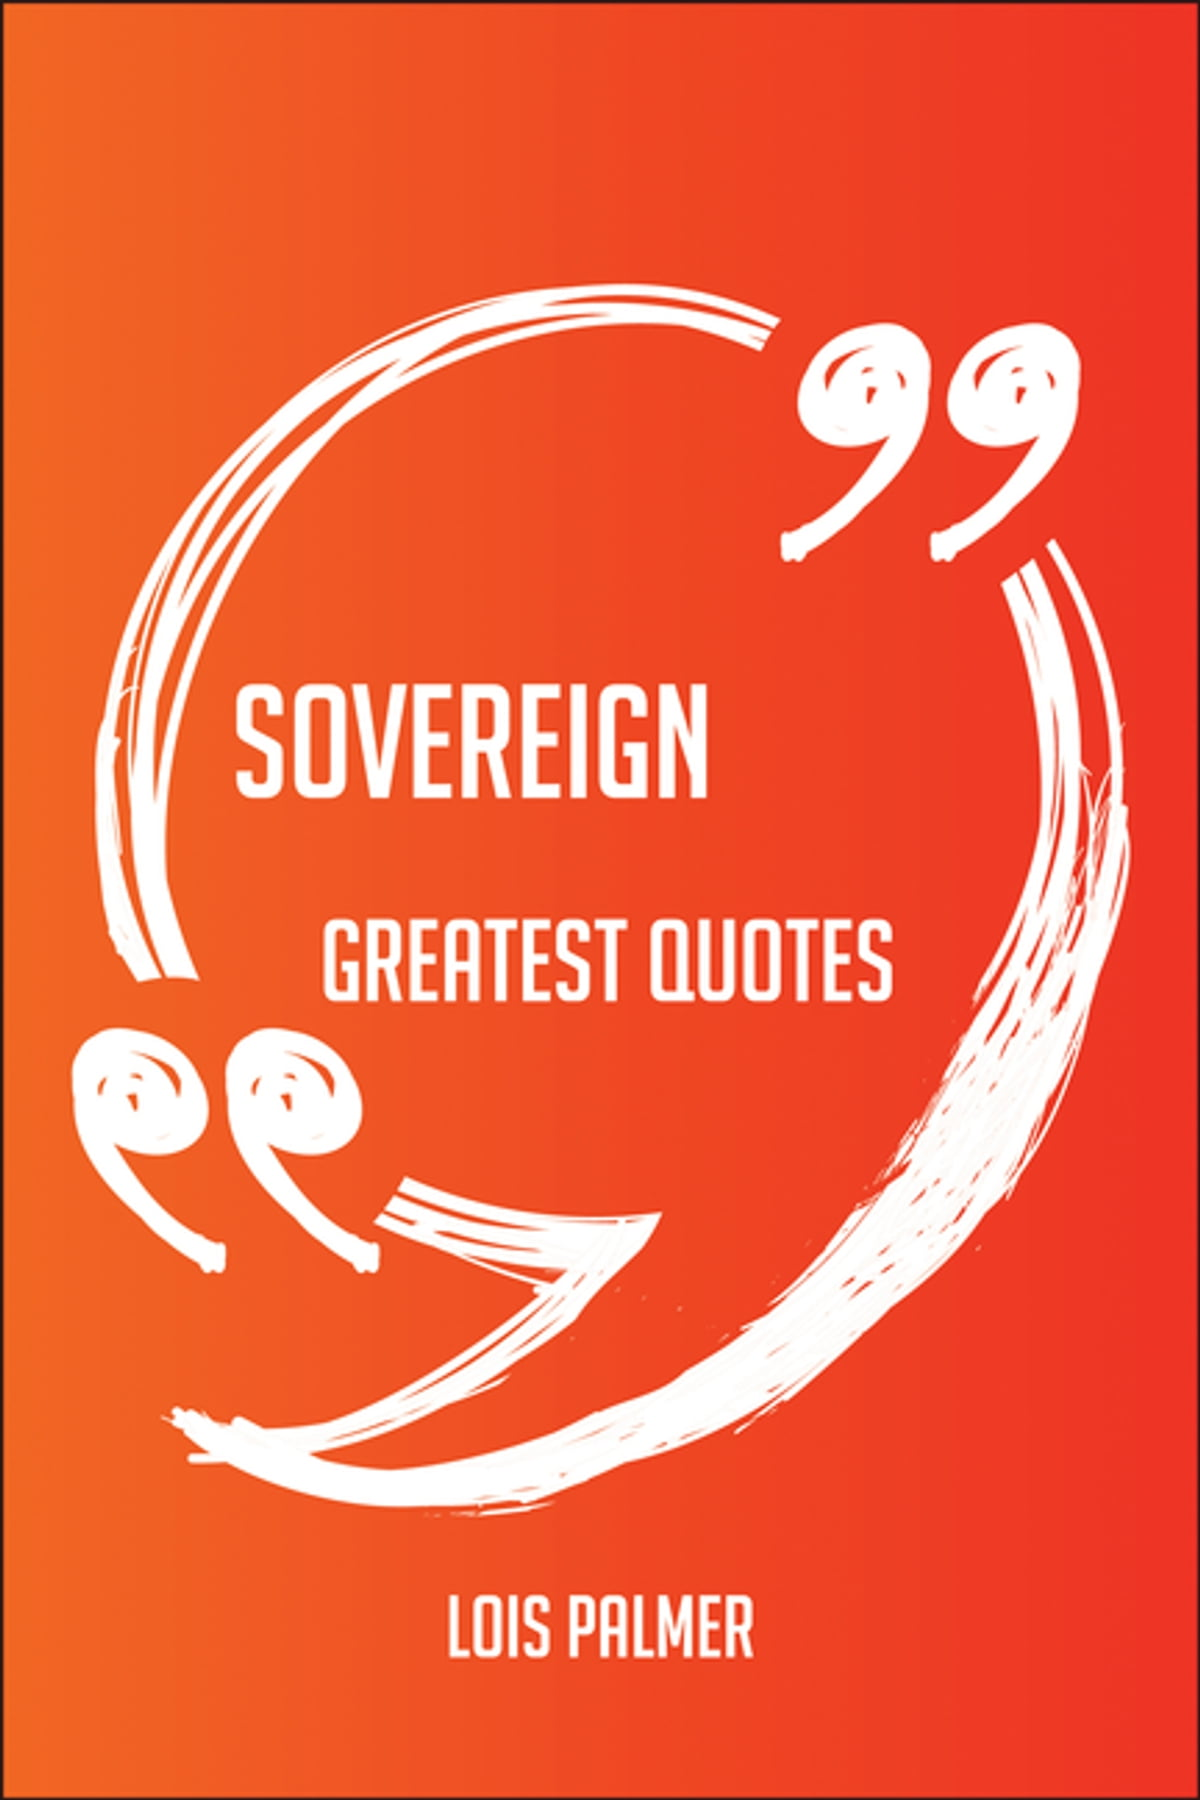 sovereign greatest quotes quick short medium or long quotes